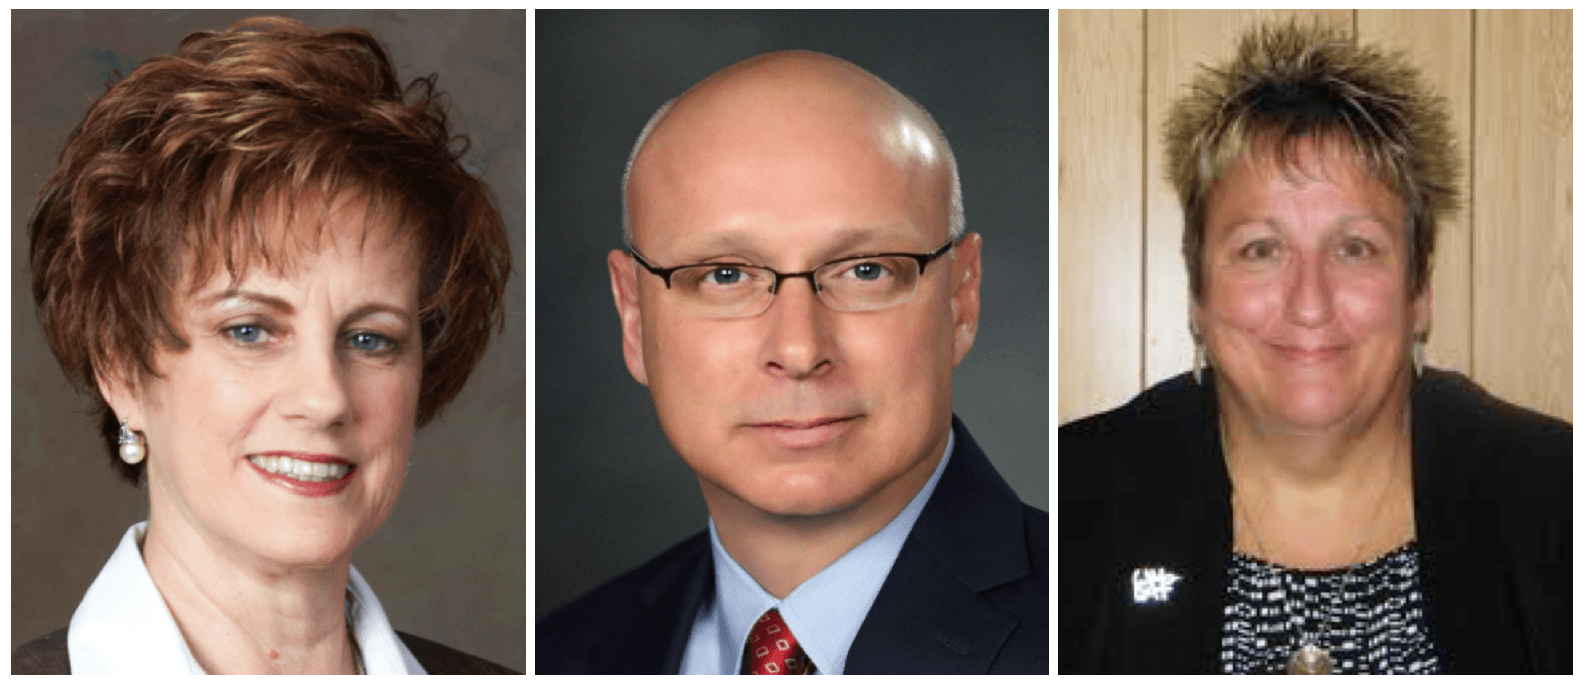 Debbie Meaux, Scott Richard, and Debra Schum have all been on the losing side of several education fights.